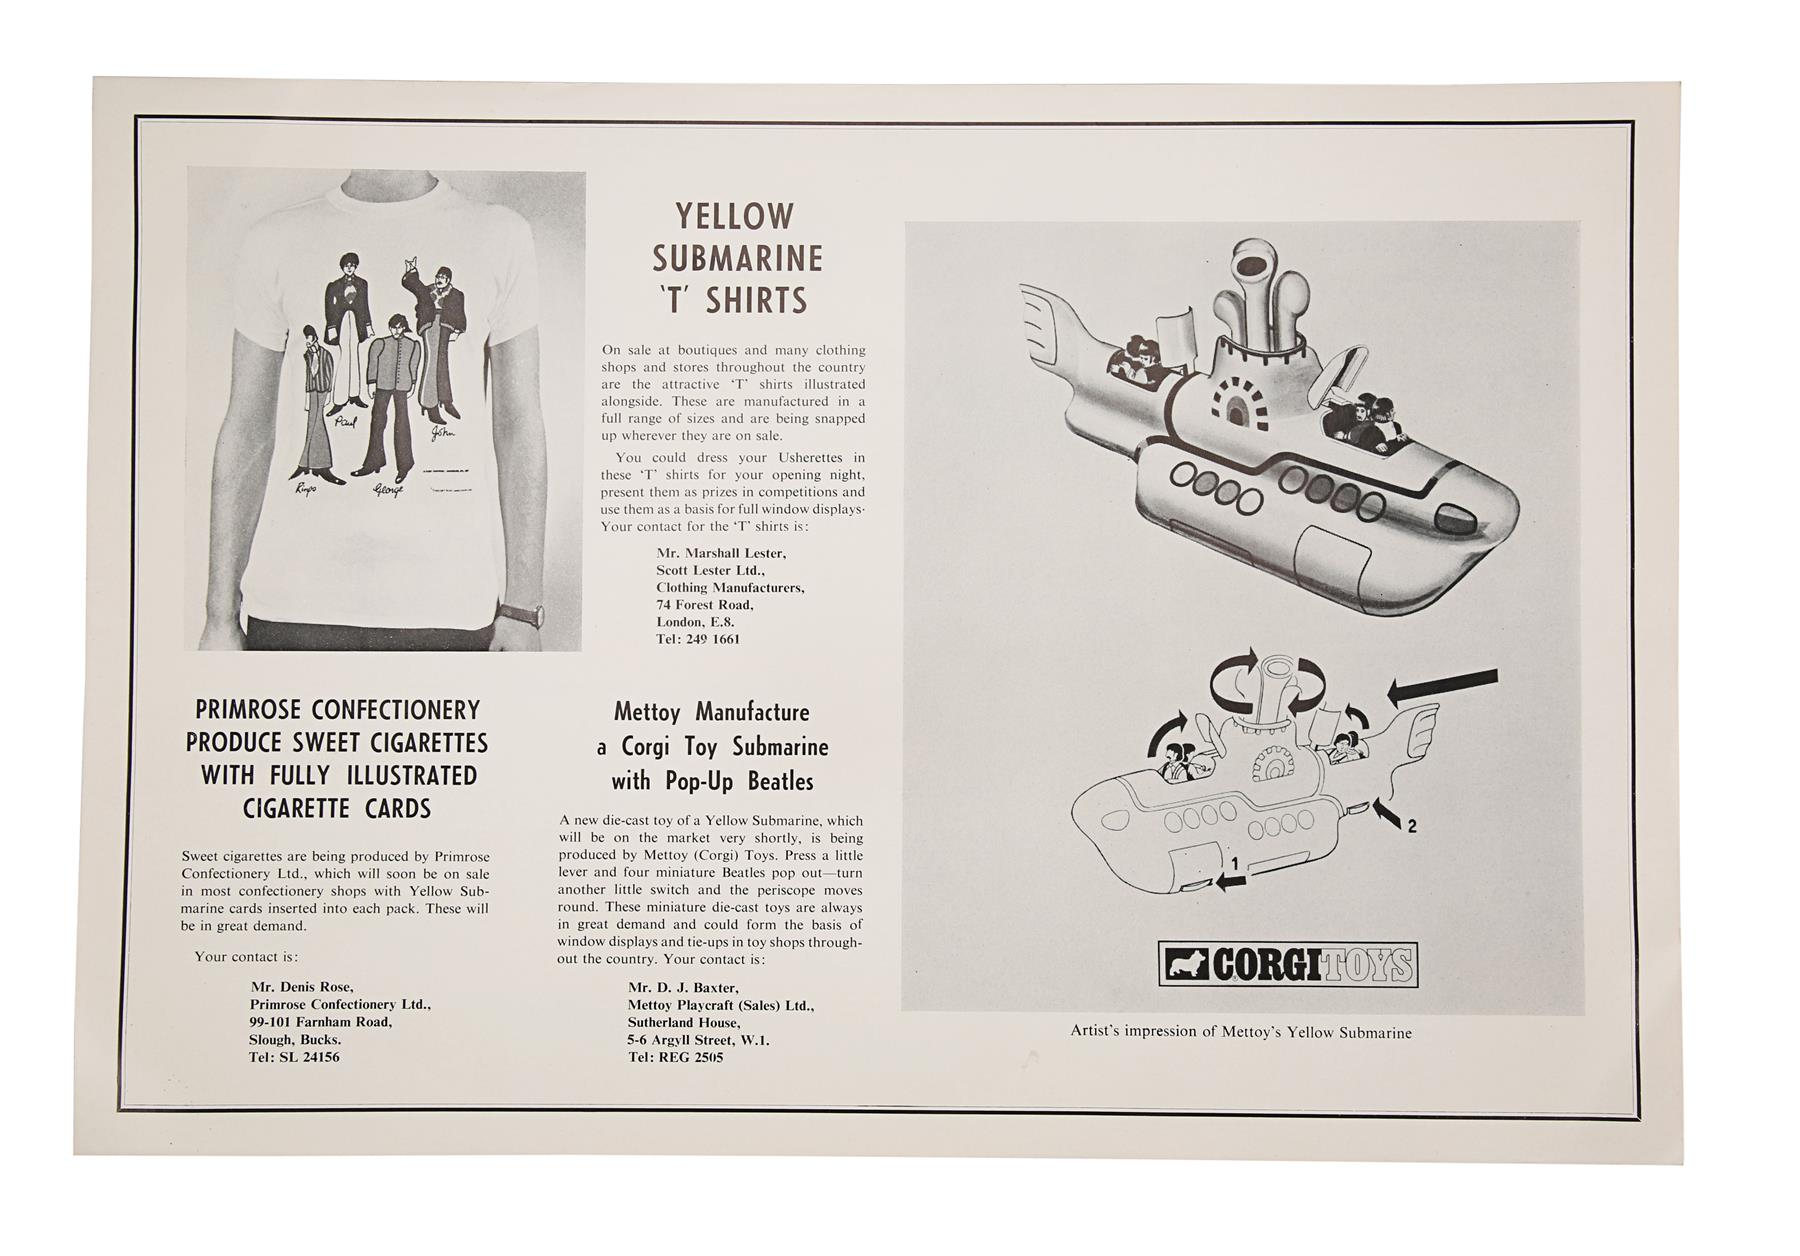 YELLOW SUBMARINE (1968) - British Exhibitors' Campaign Book and Two Advertising Supplements, 1968 - Image 4 of 7